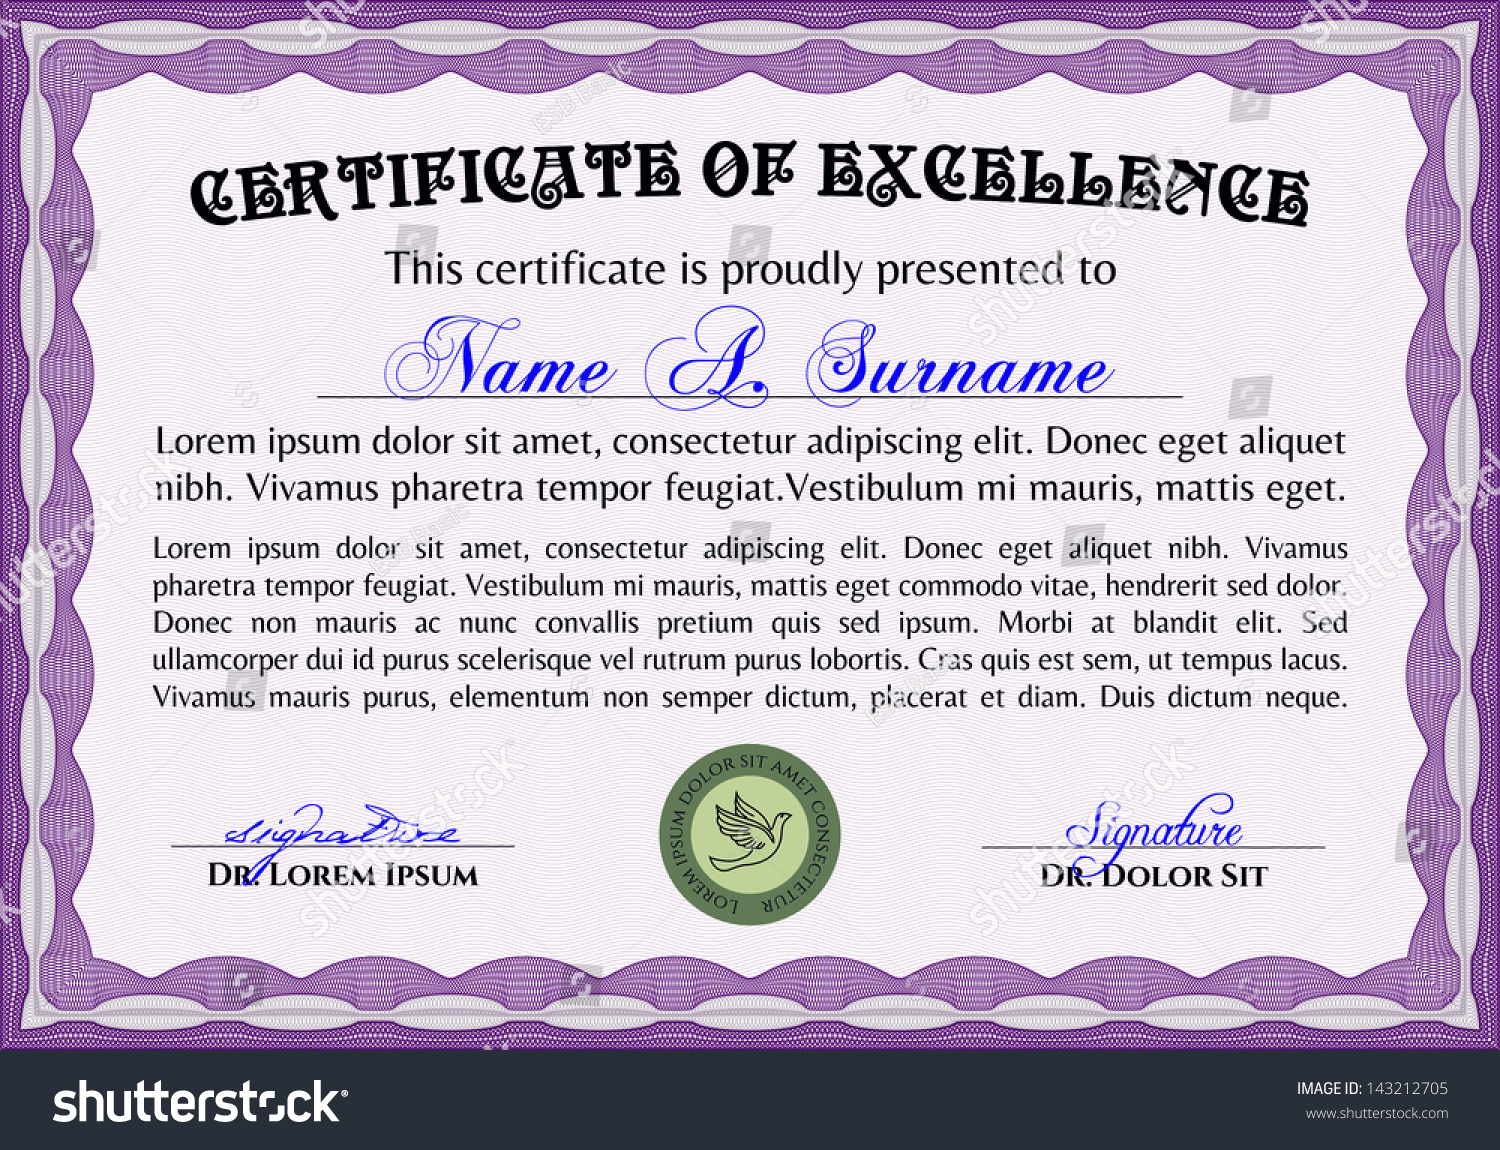 Horizontal Certificate Excellence Template Vector 143212705 – Sample Certificate of Excellence